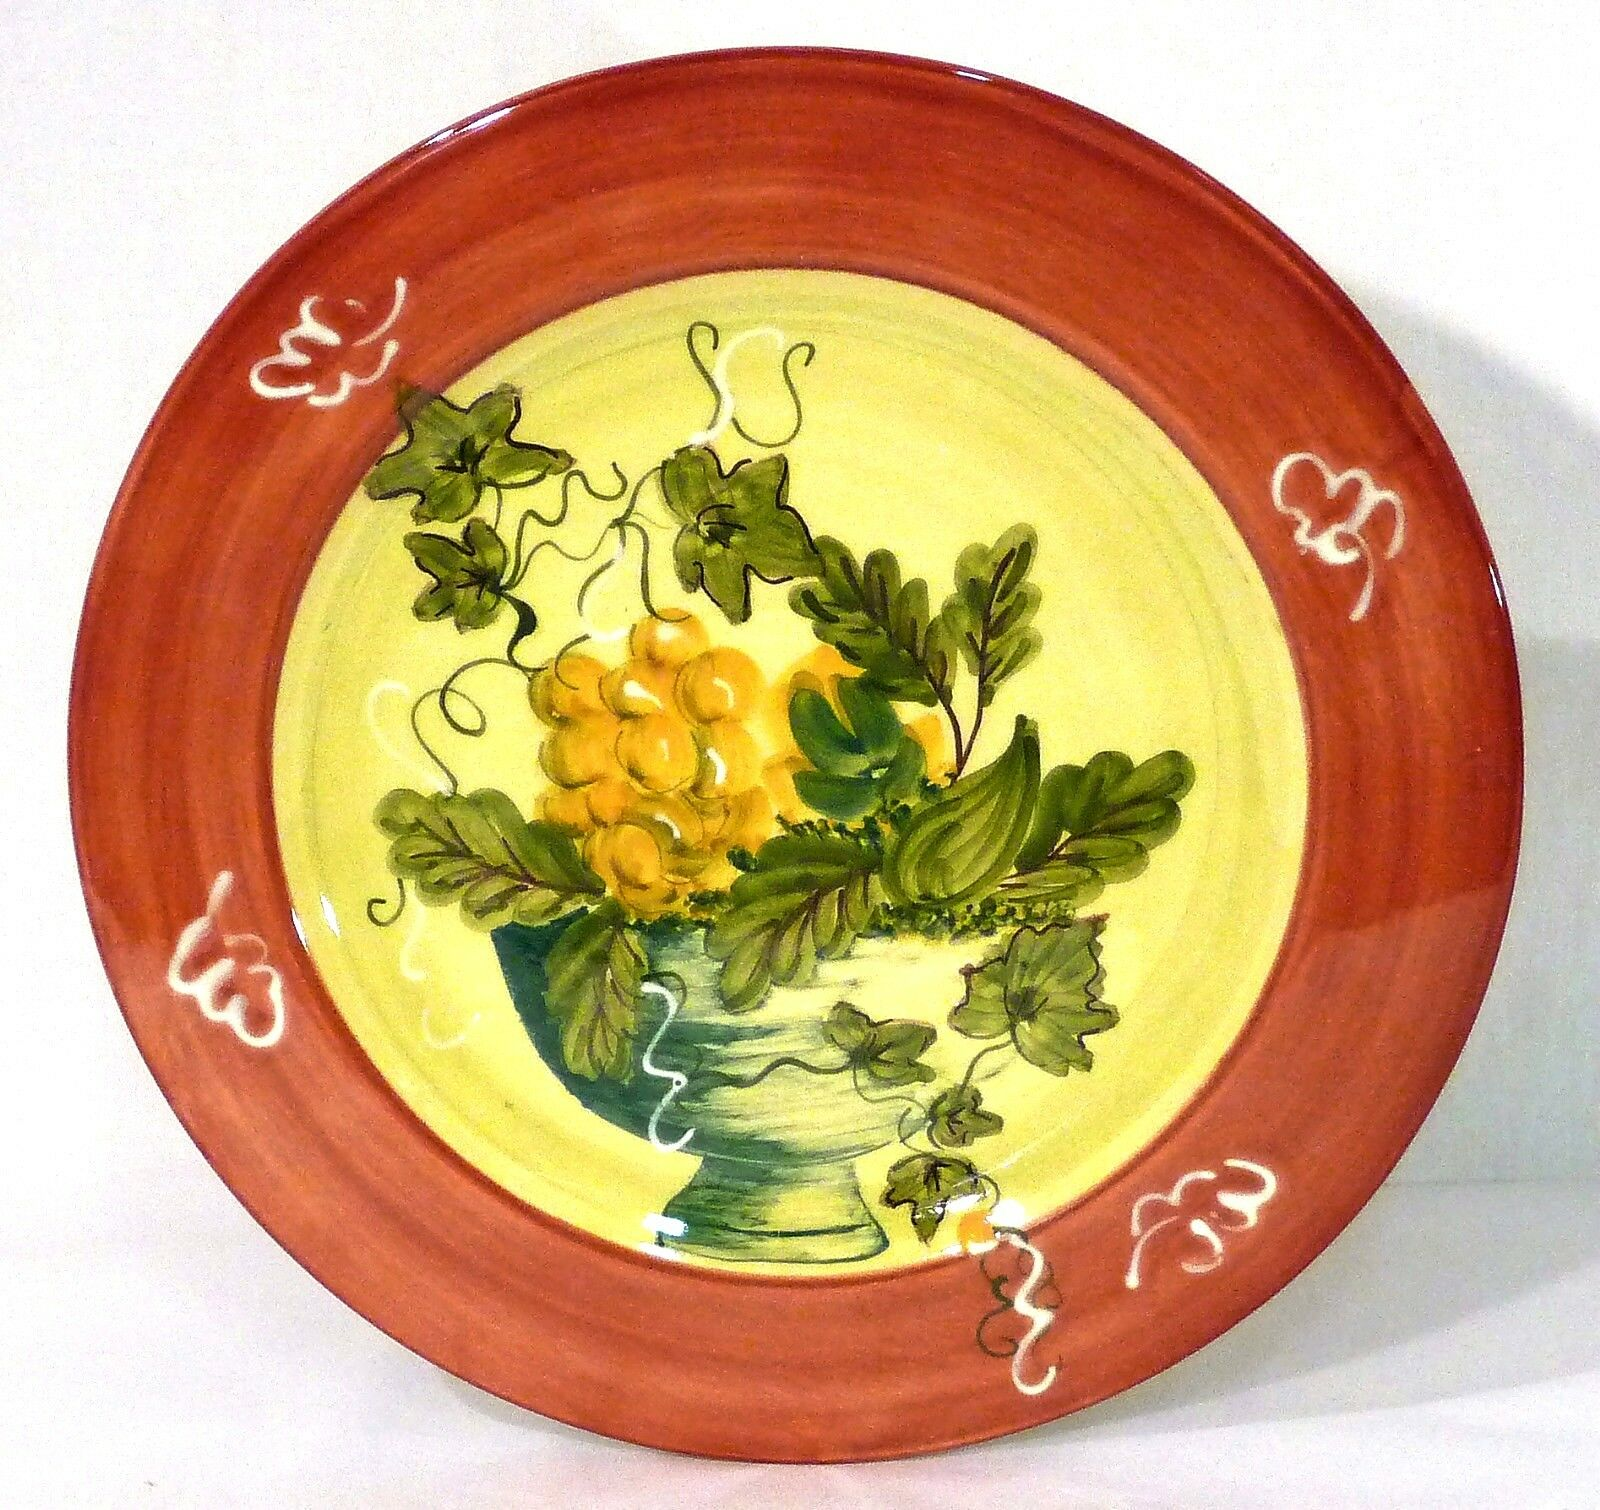 Romancing Provence 12.5  Charger Serving Plate w Grapevine Motif Made in France